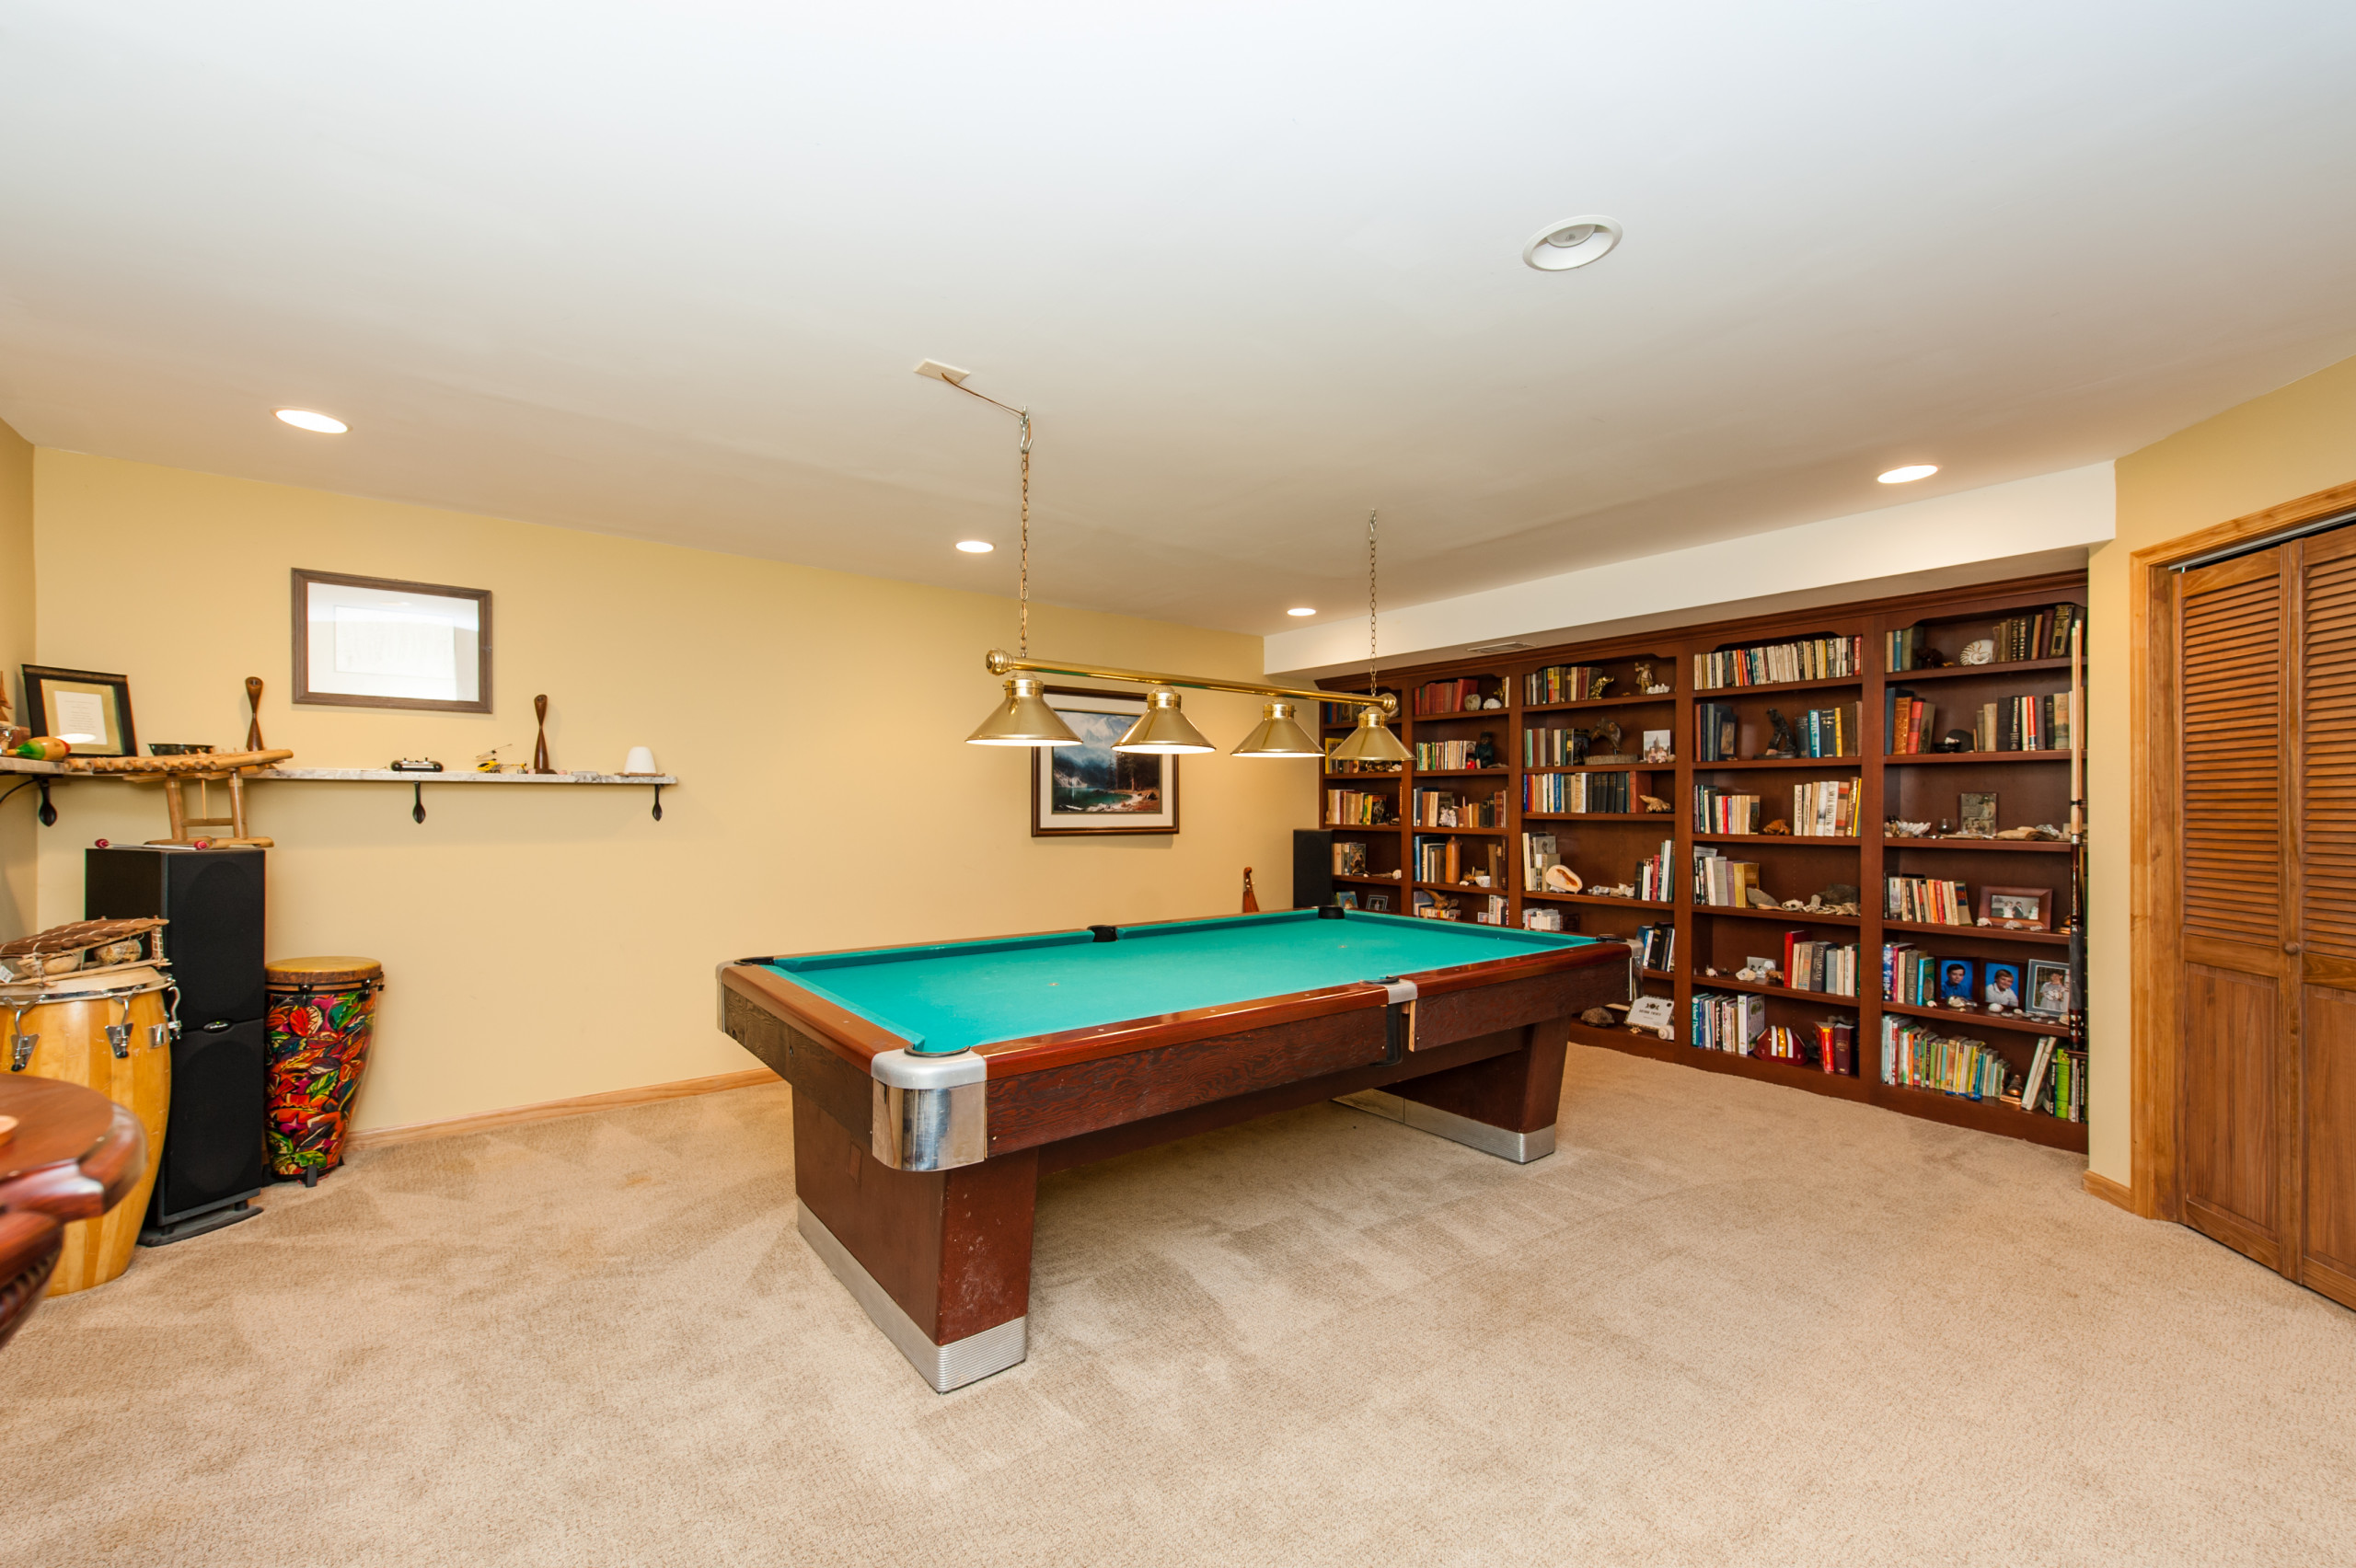 Linden, VA Pool Room Built-In Shelves